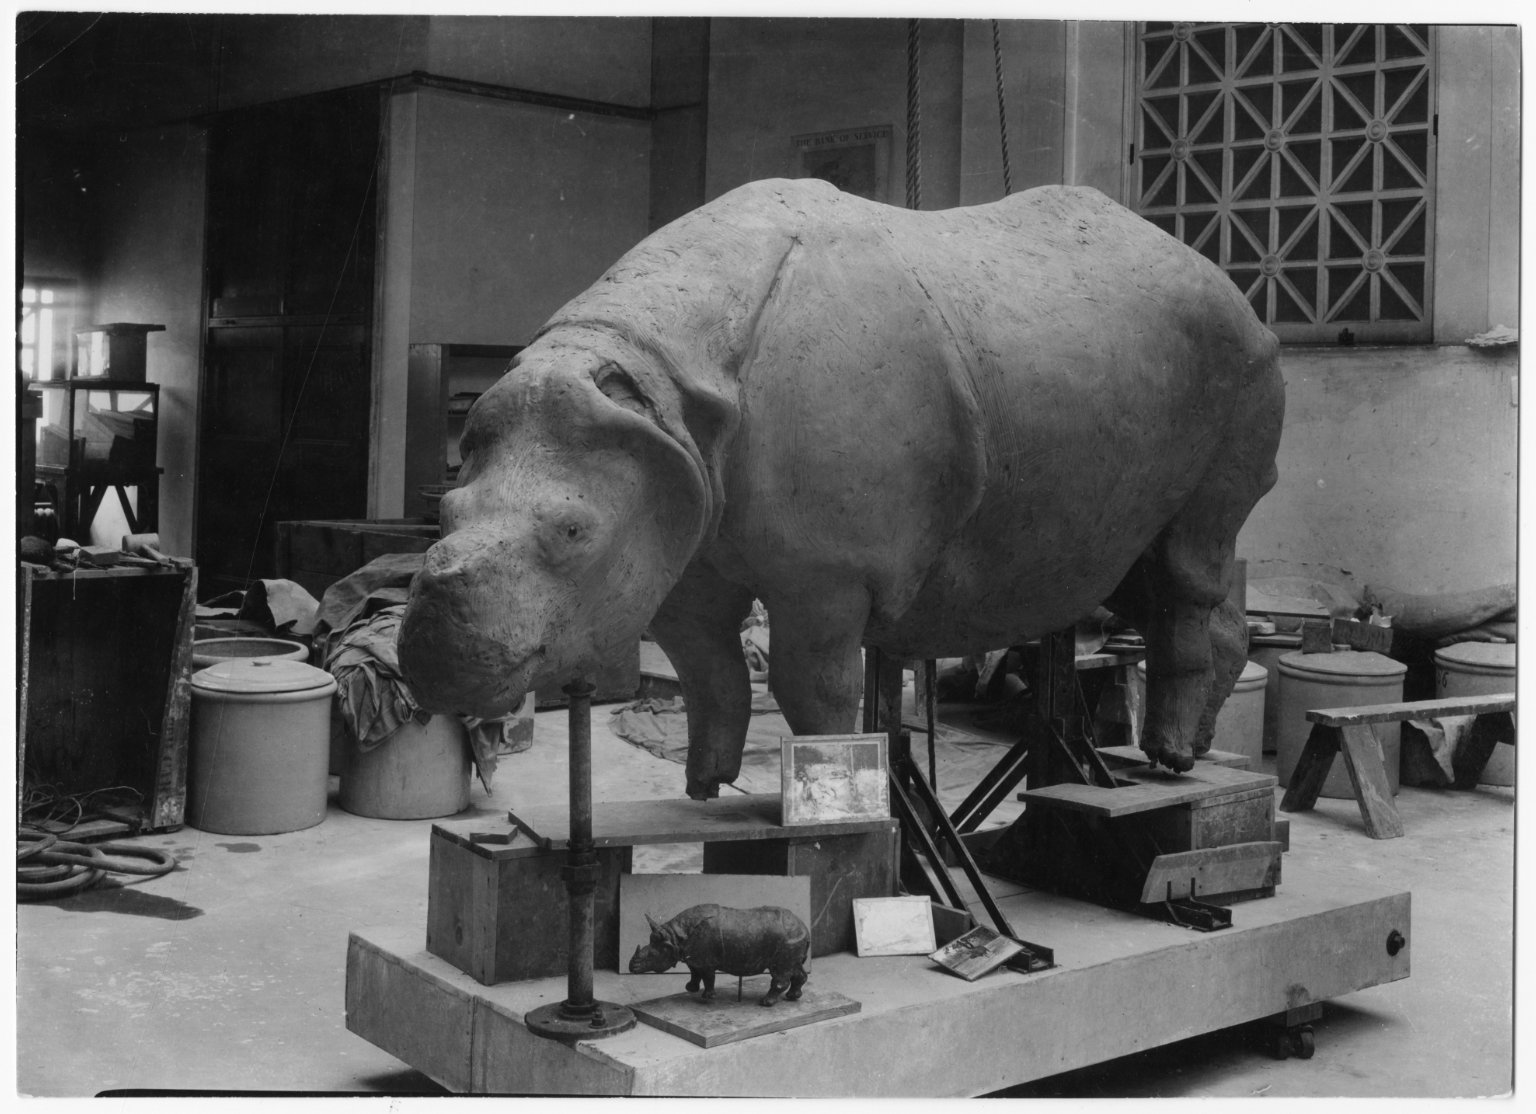 Rough clay model being prepared for exhibit at the Field Musuem